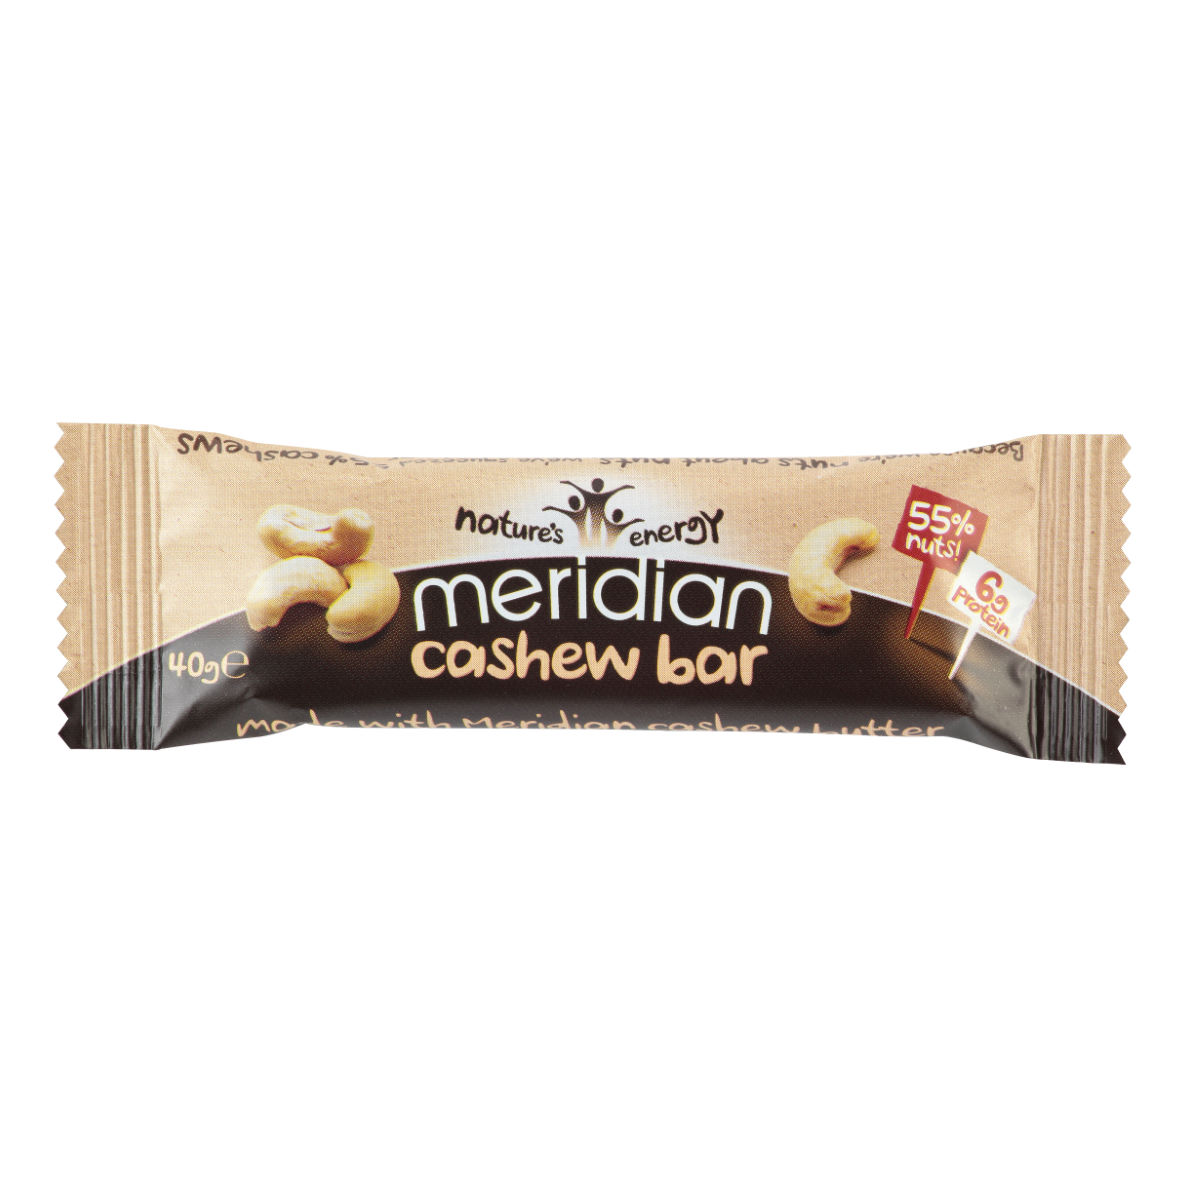 Meridian Cashew Bar (18 x 40g)   Energy & Recovery Food